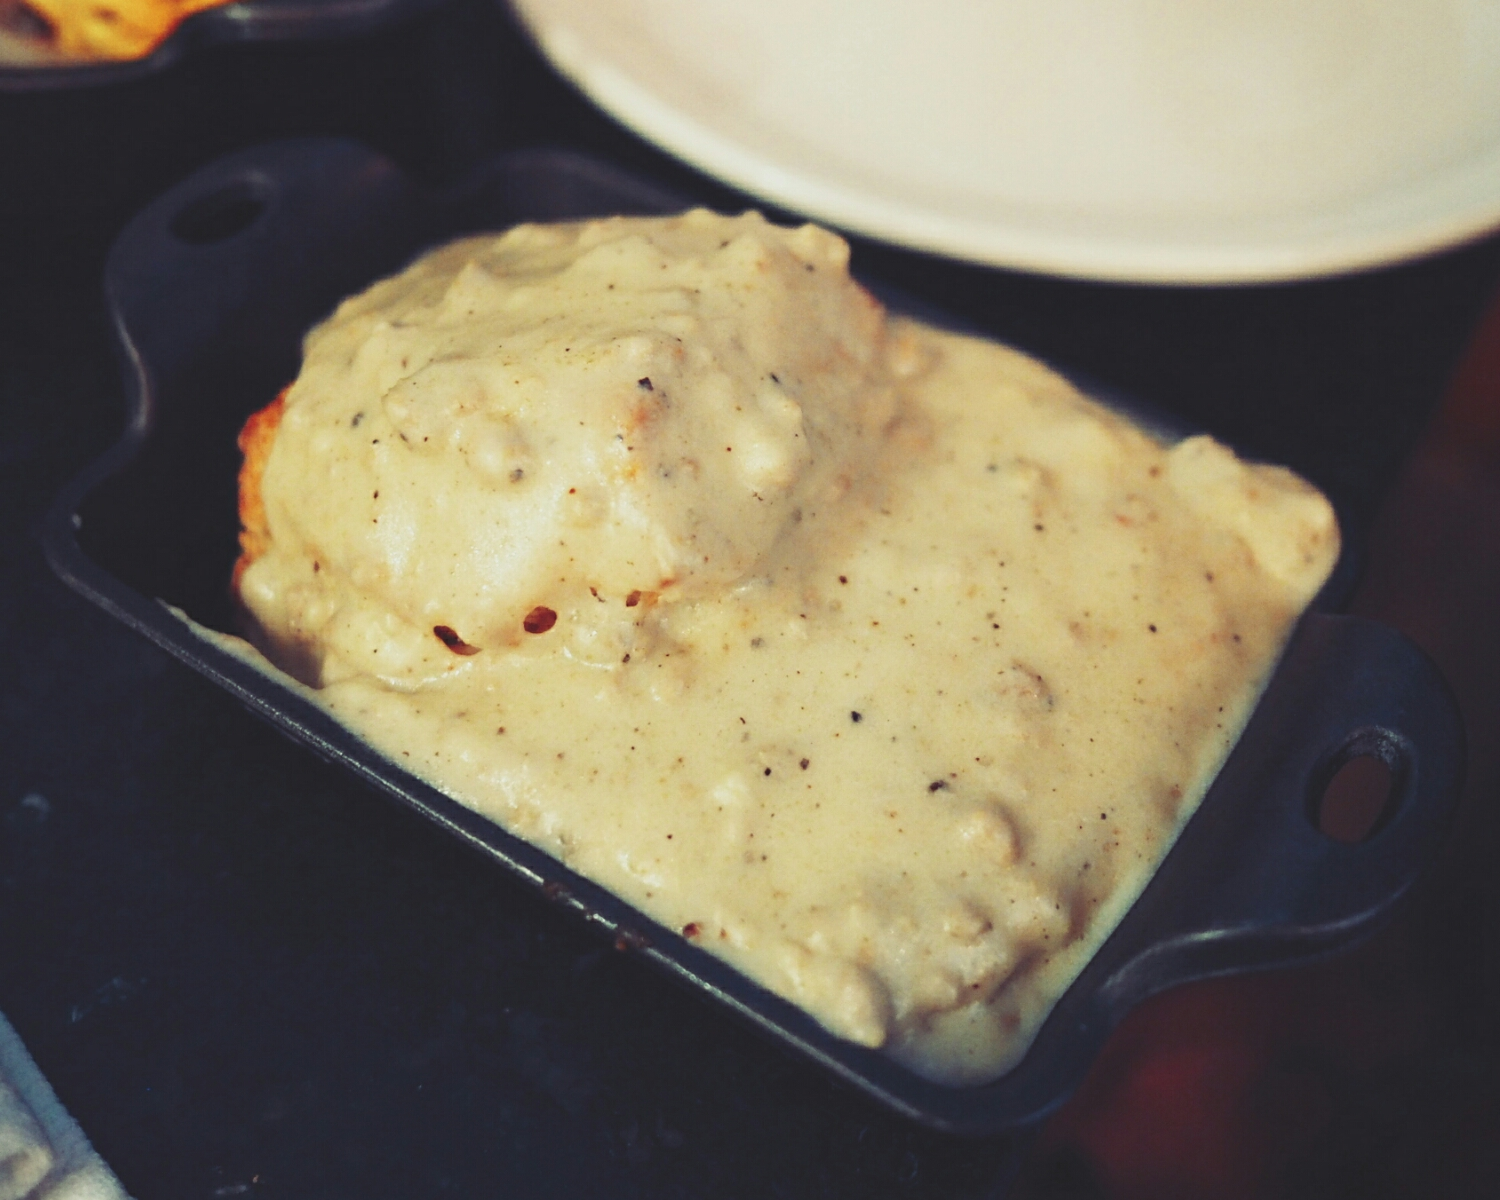 biscuit and gravy.